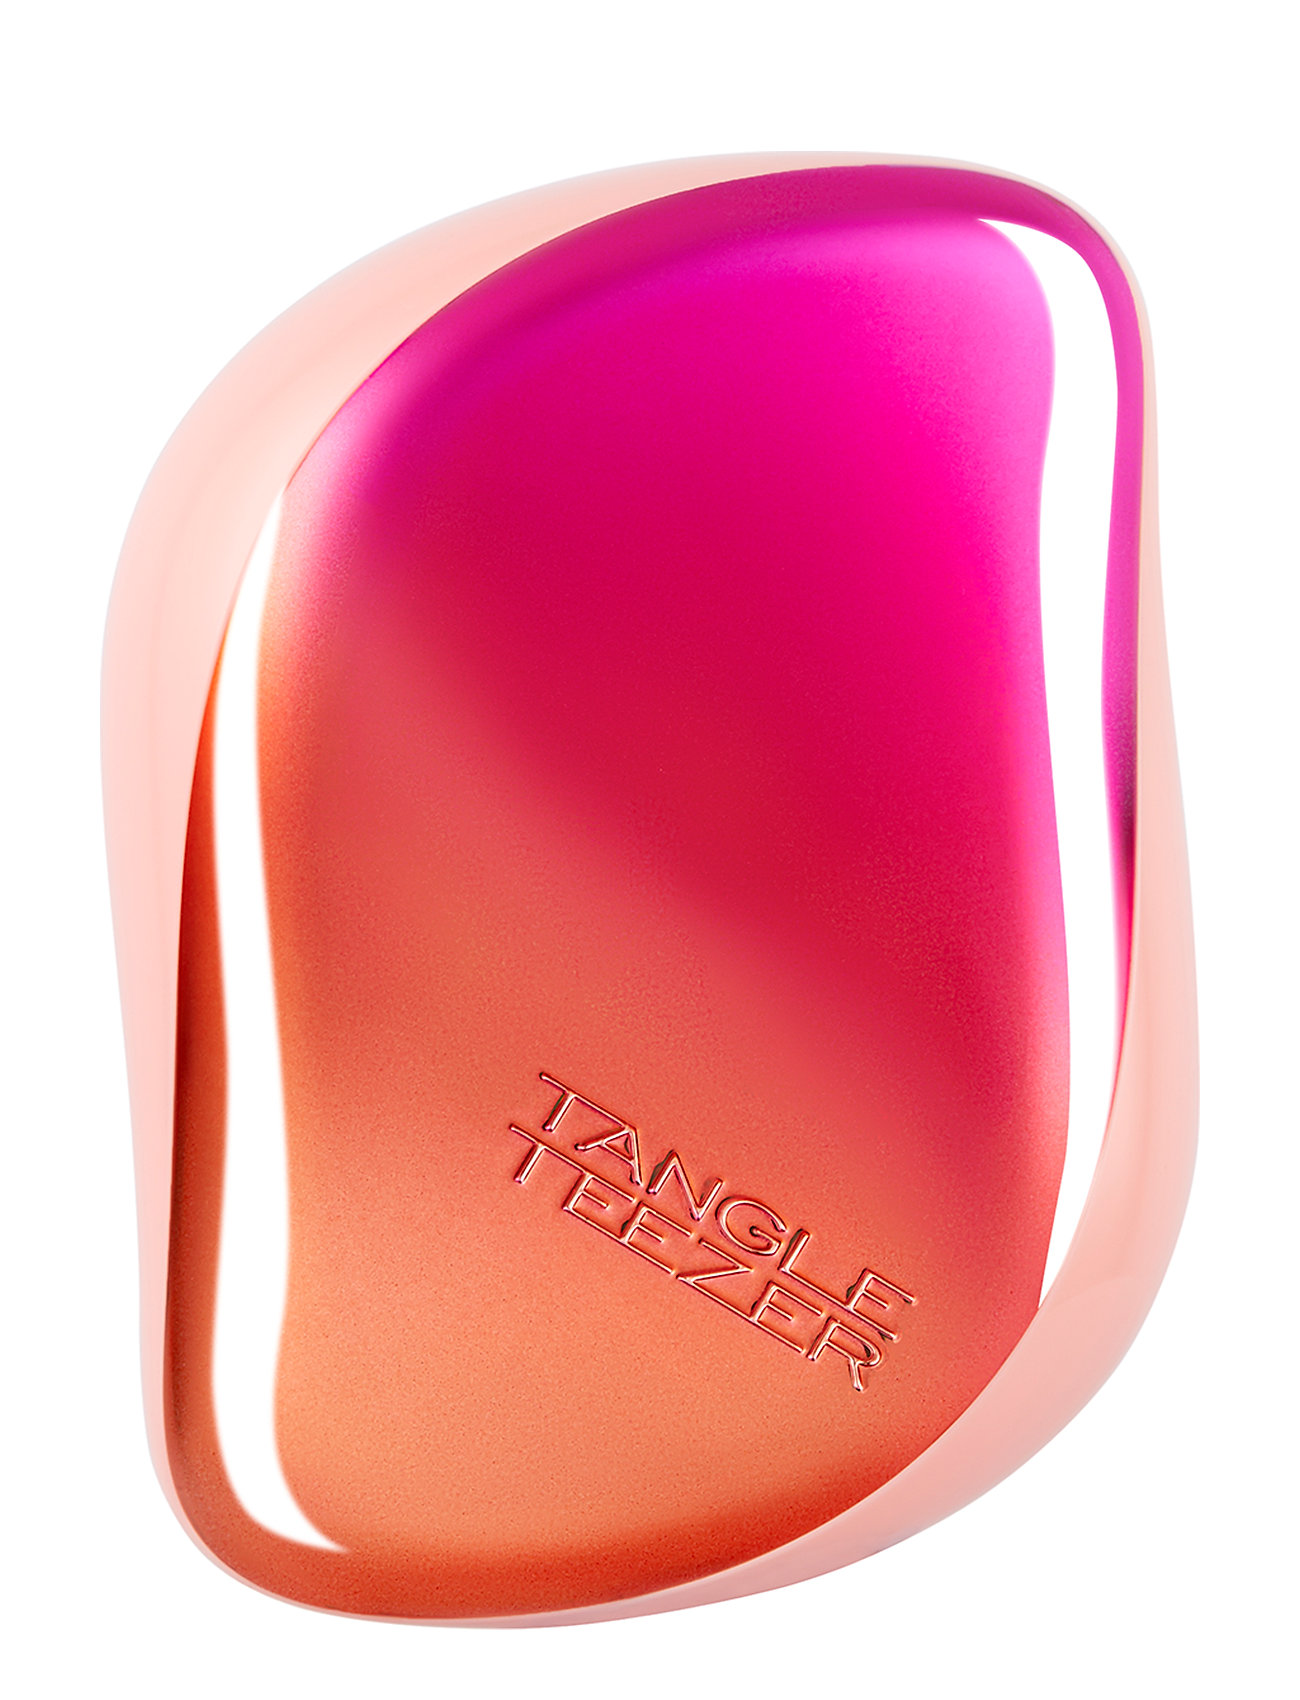 Tangle Teezer Tangle Teezer Compact Styler Cerise Pink Ombre - NO COLOUR